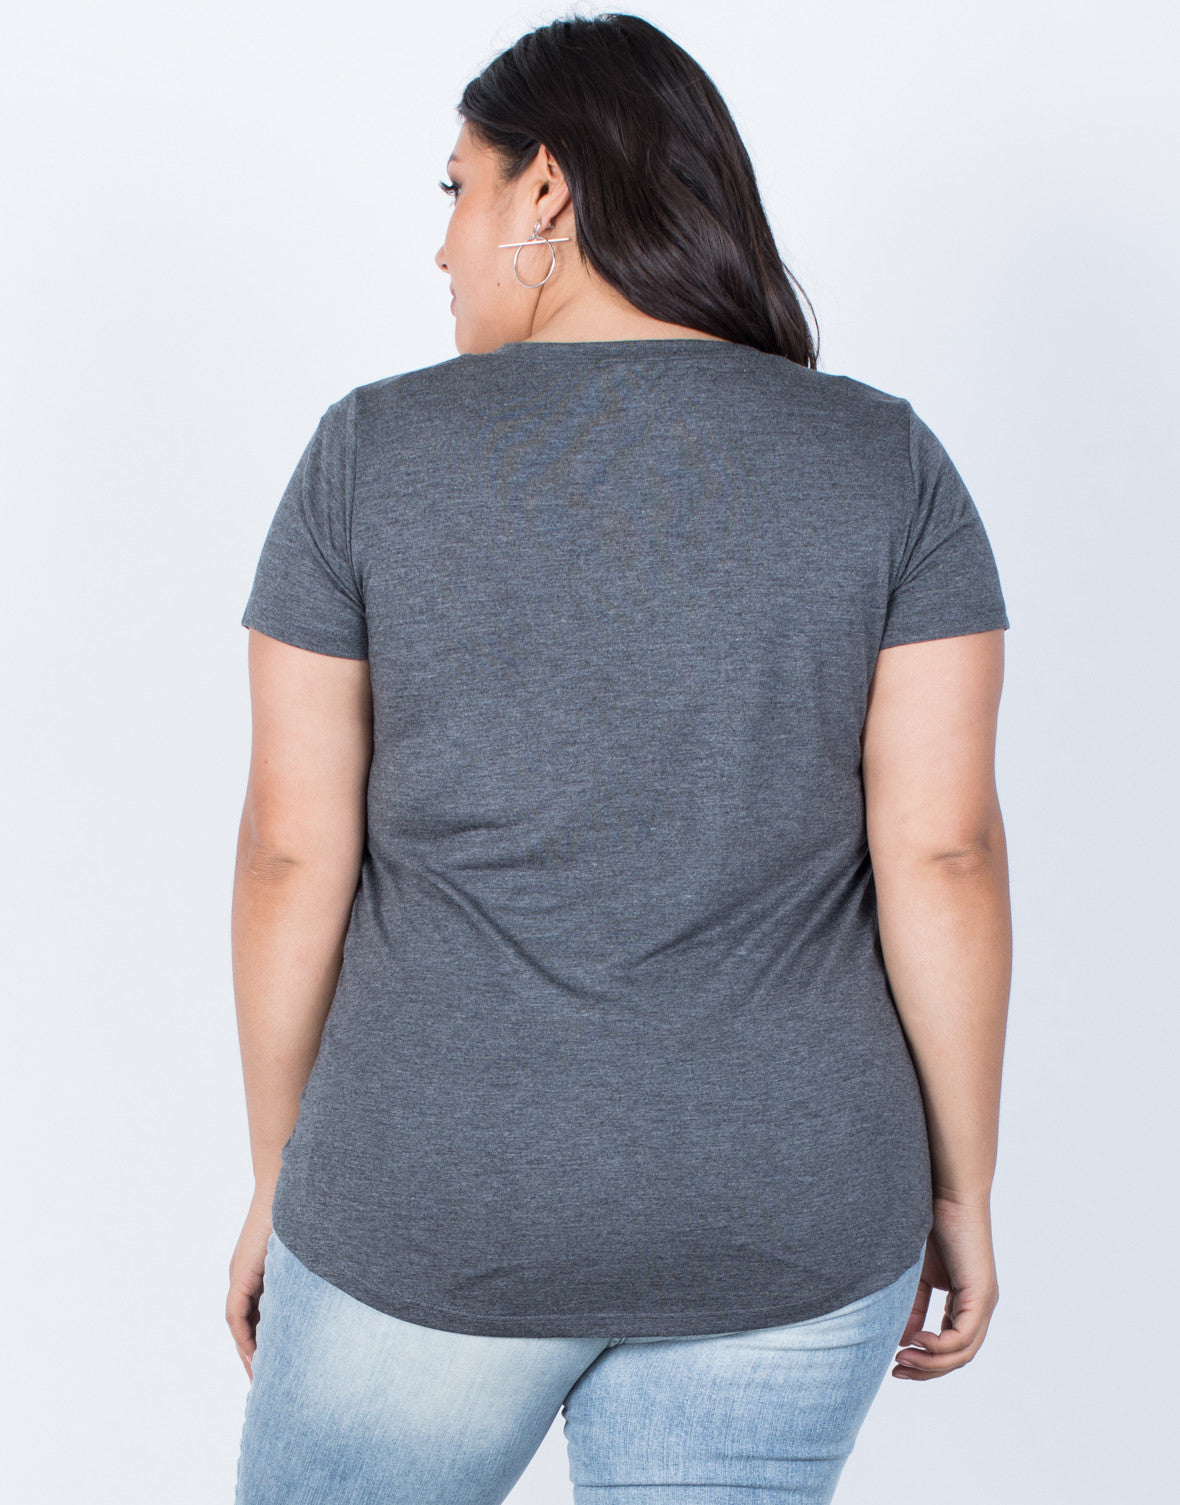 Dark Gray Plus Size So Relaxed Tee - Back View